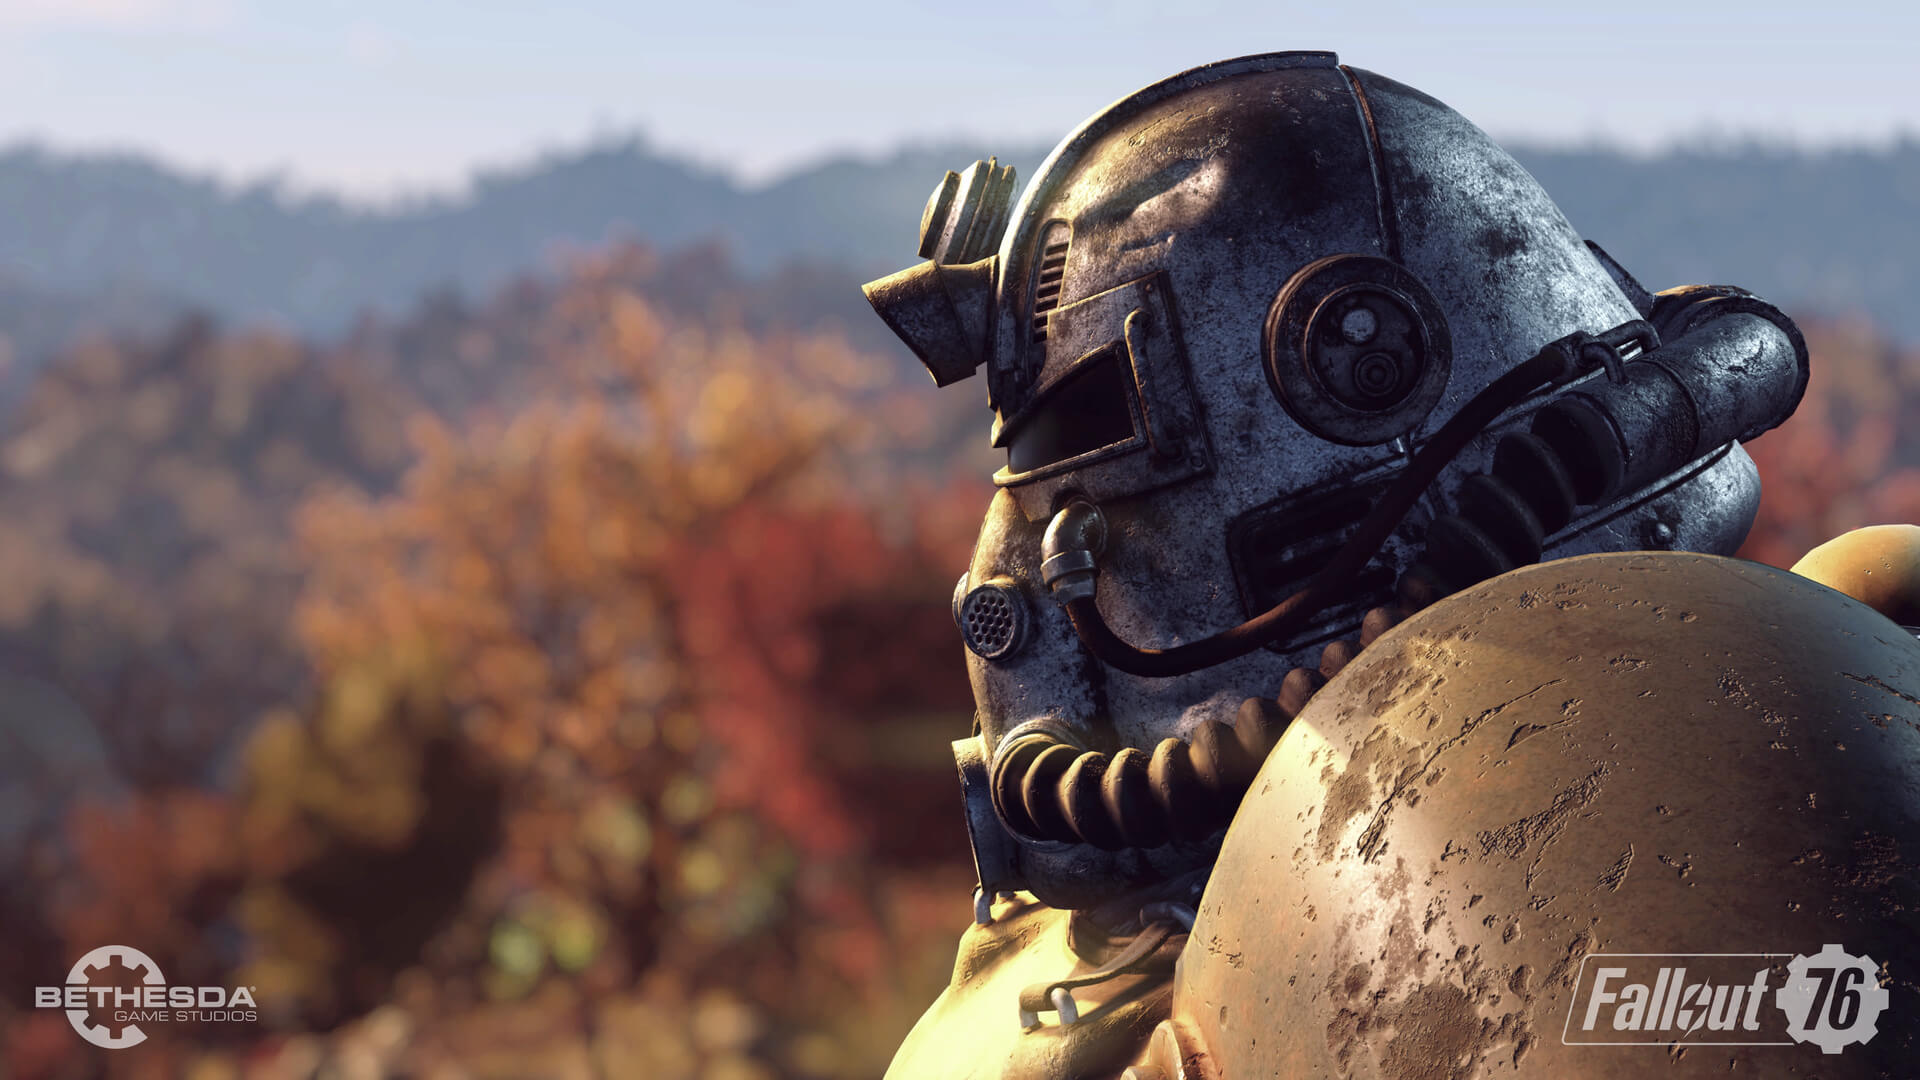 Fallout 76 Update 1.33 released, includes Graphics, Performance & Stability fixes, full patch notes